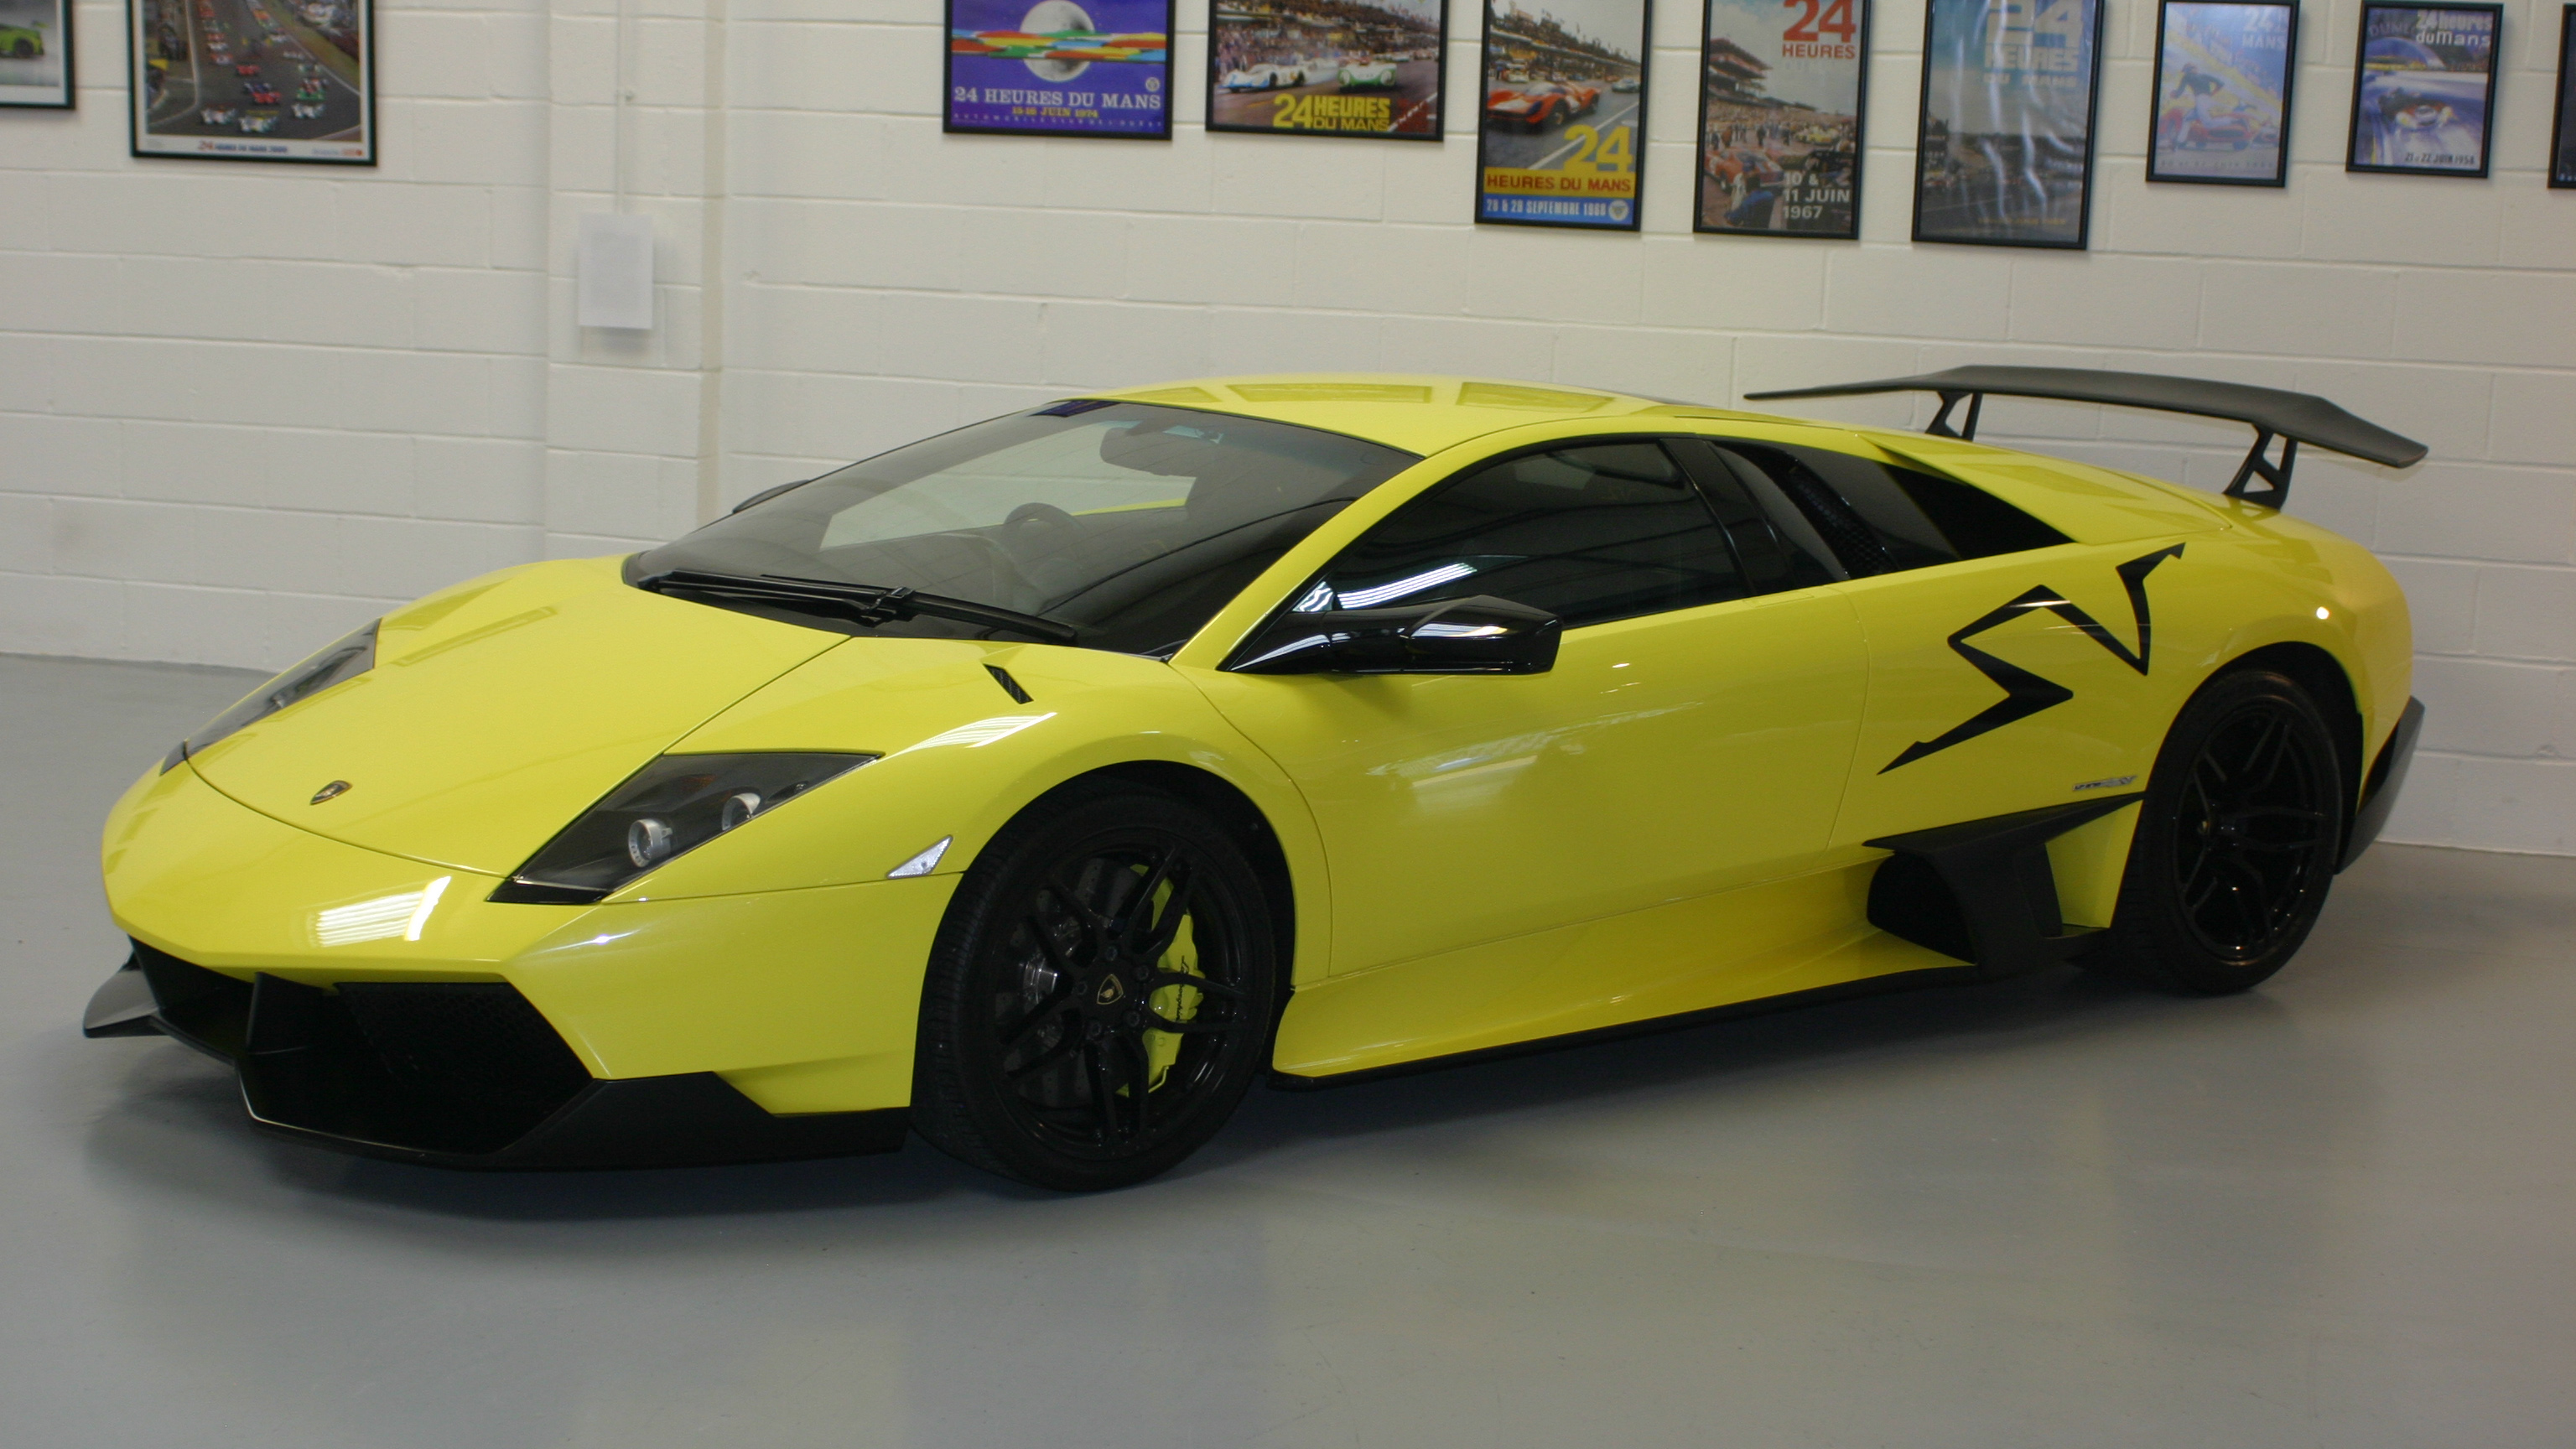 Rare 2009 Lamborghini Murcielago Sv Up For Sale Top Speed